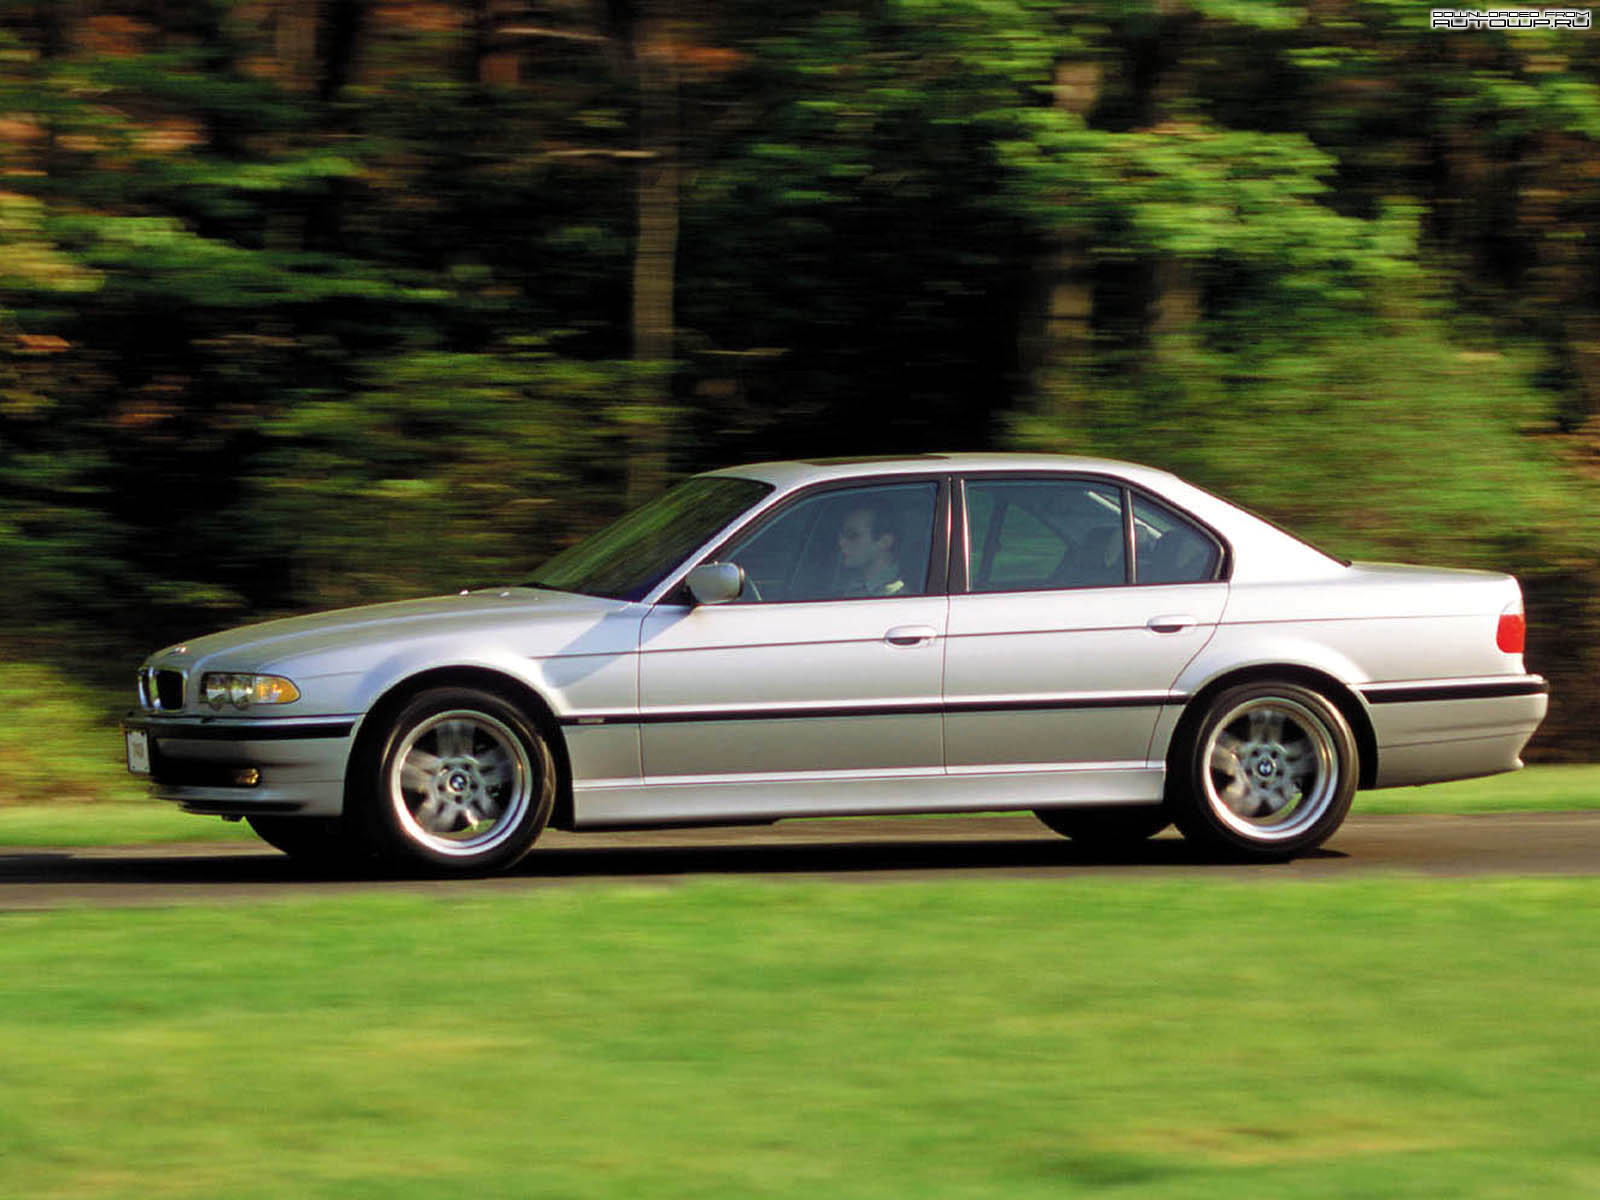 bmw 7 series e38 picture 62481 bmw photo gallery. Black Bedroom Furniture Sets. Home Design Ideas